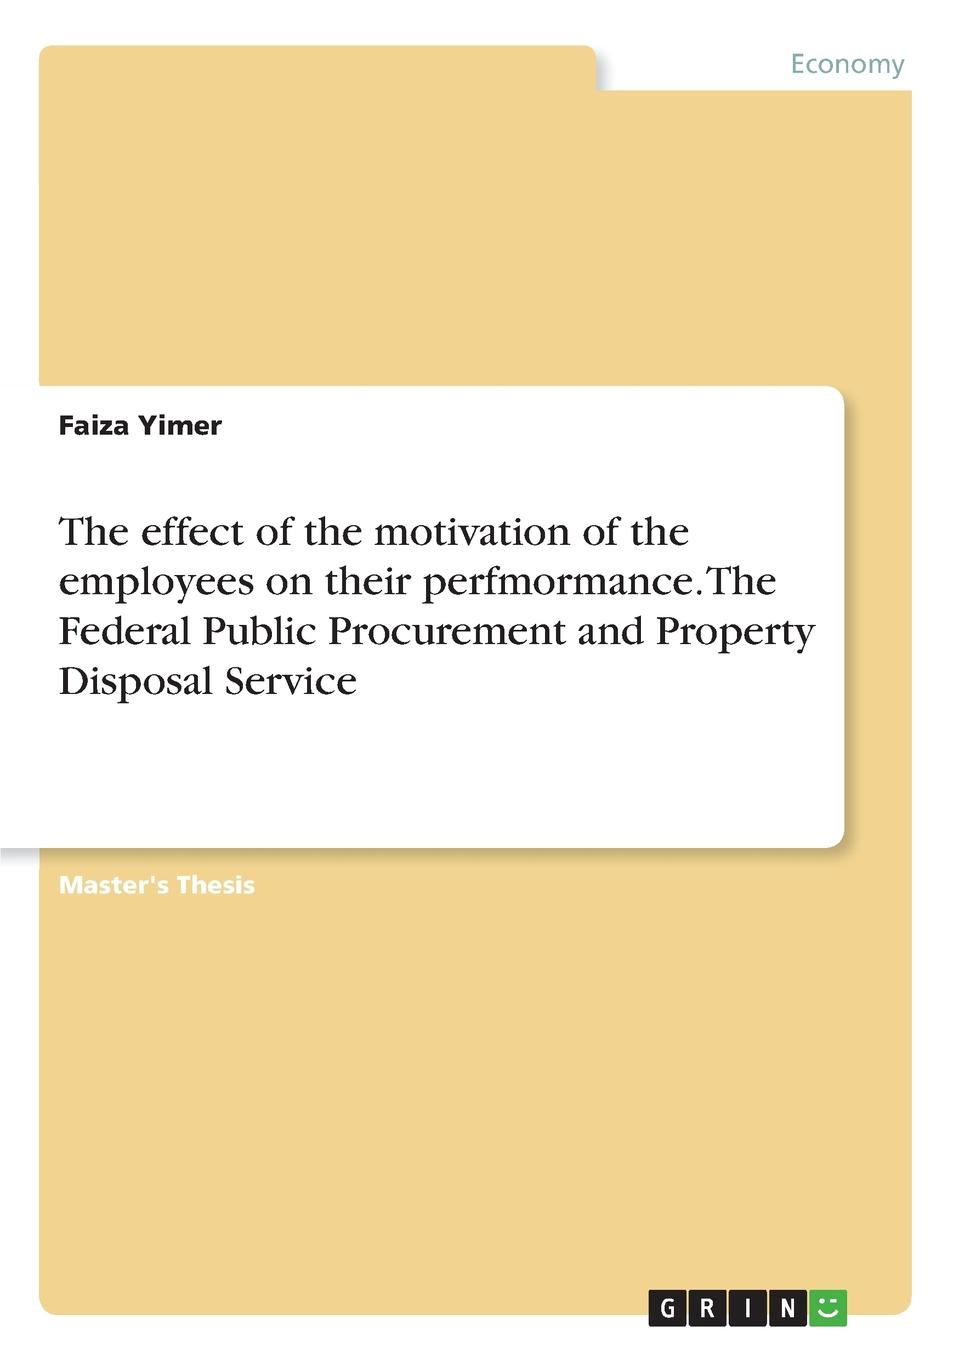 Faiza Yimer The effect of the motivation of the employees on their perfmormance. The Federal Public Procurement and Property Disposal Service недорго, оригинальная цена